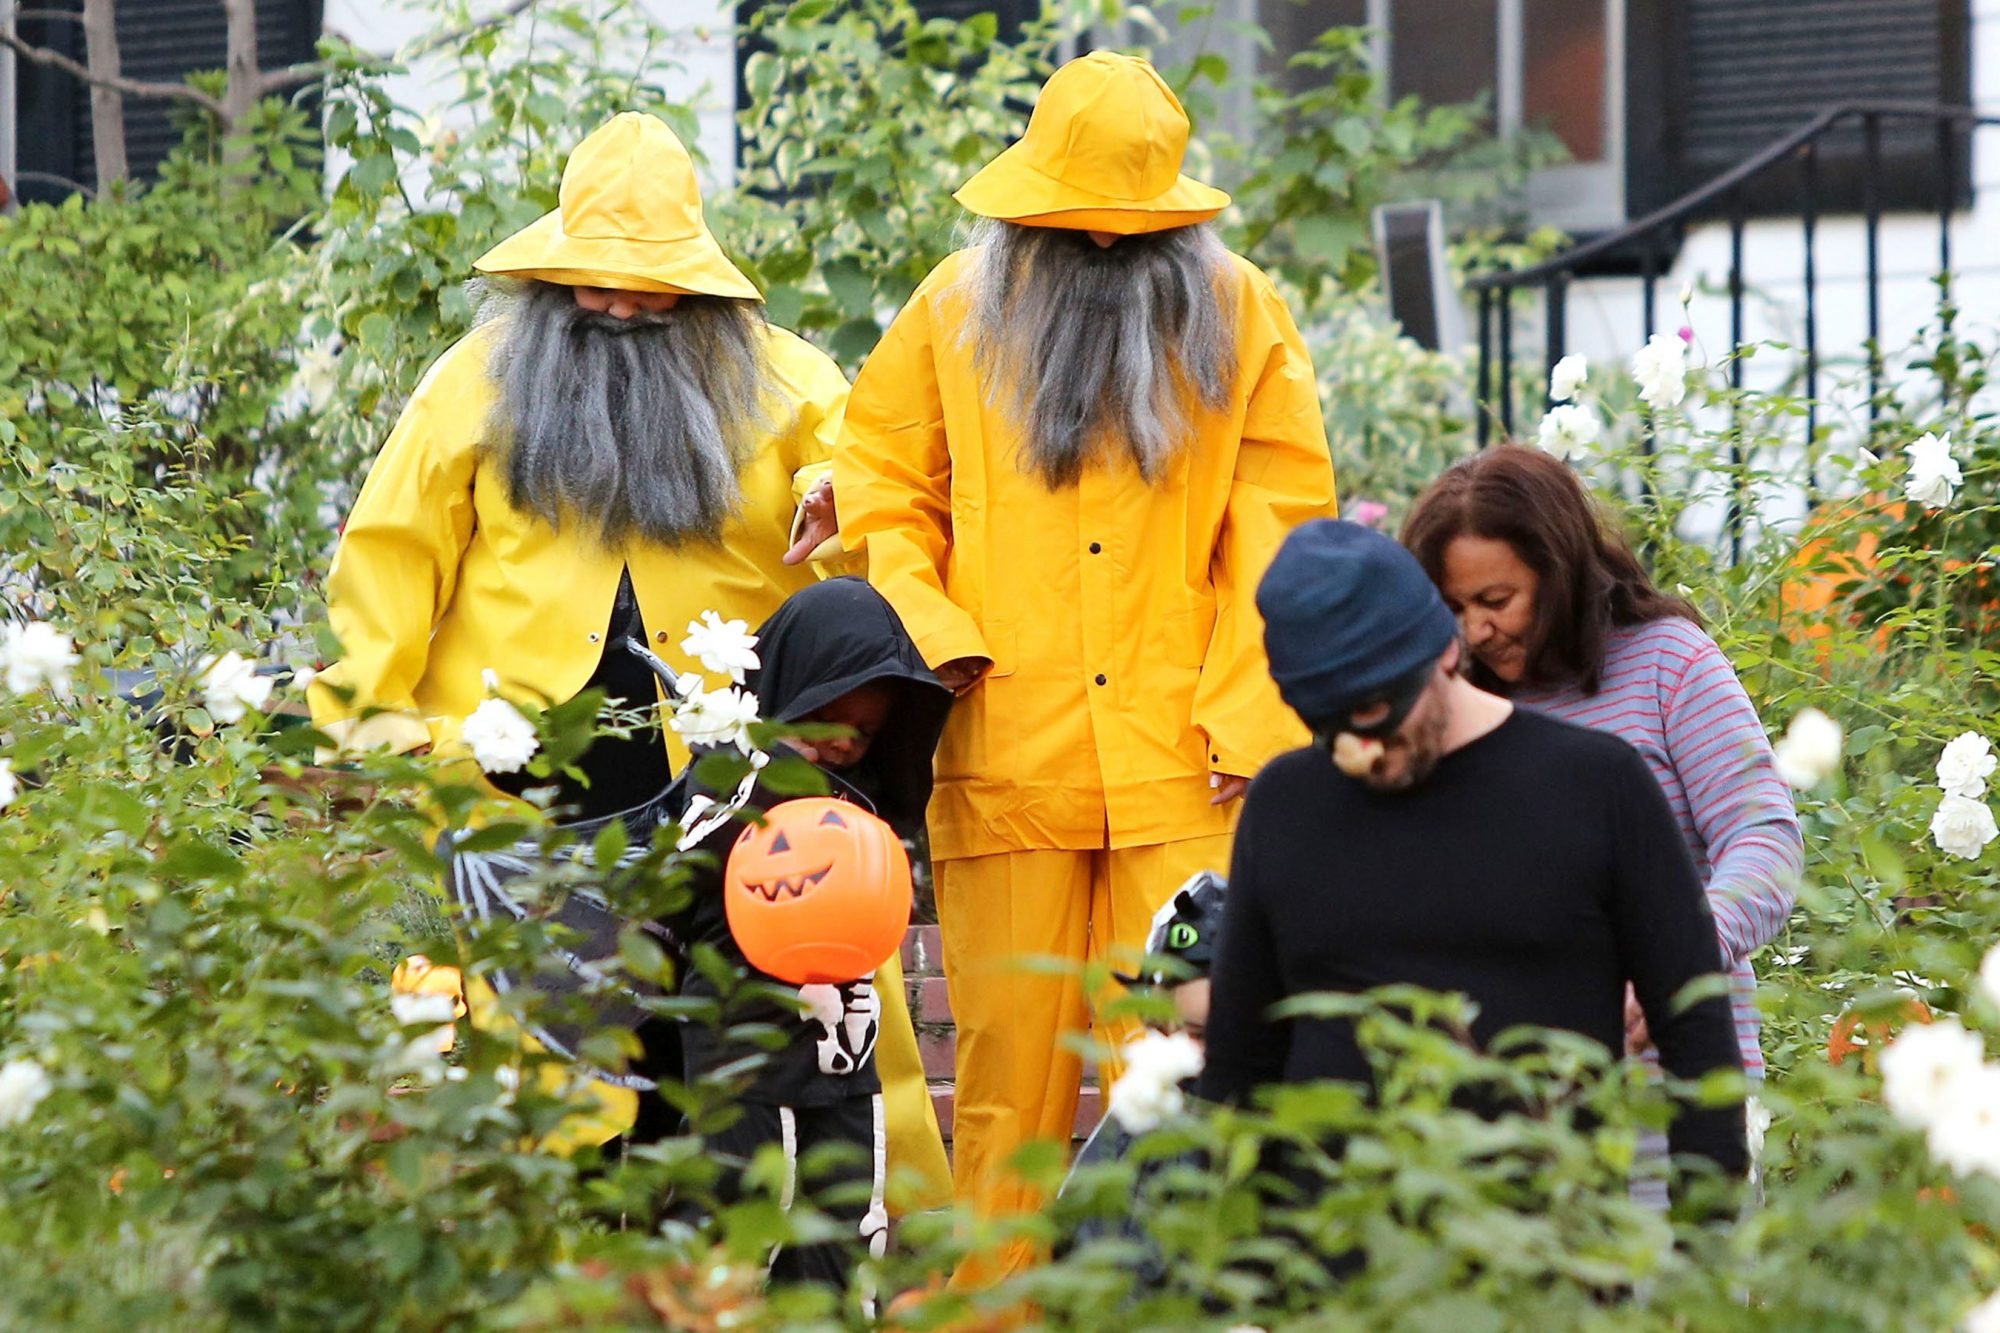 Sandra Bullock and son Louis out trick-or-treating, Los Angeles, America - 31 Oct 2013